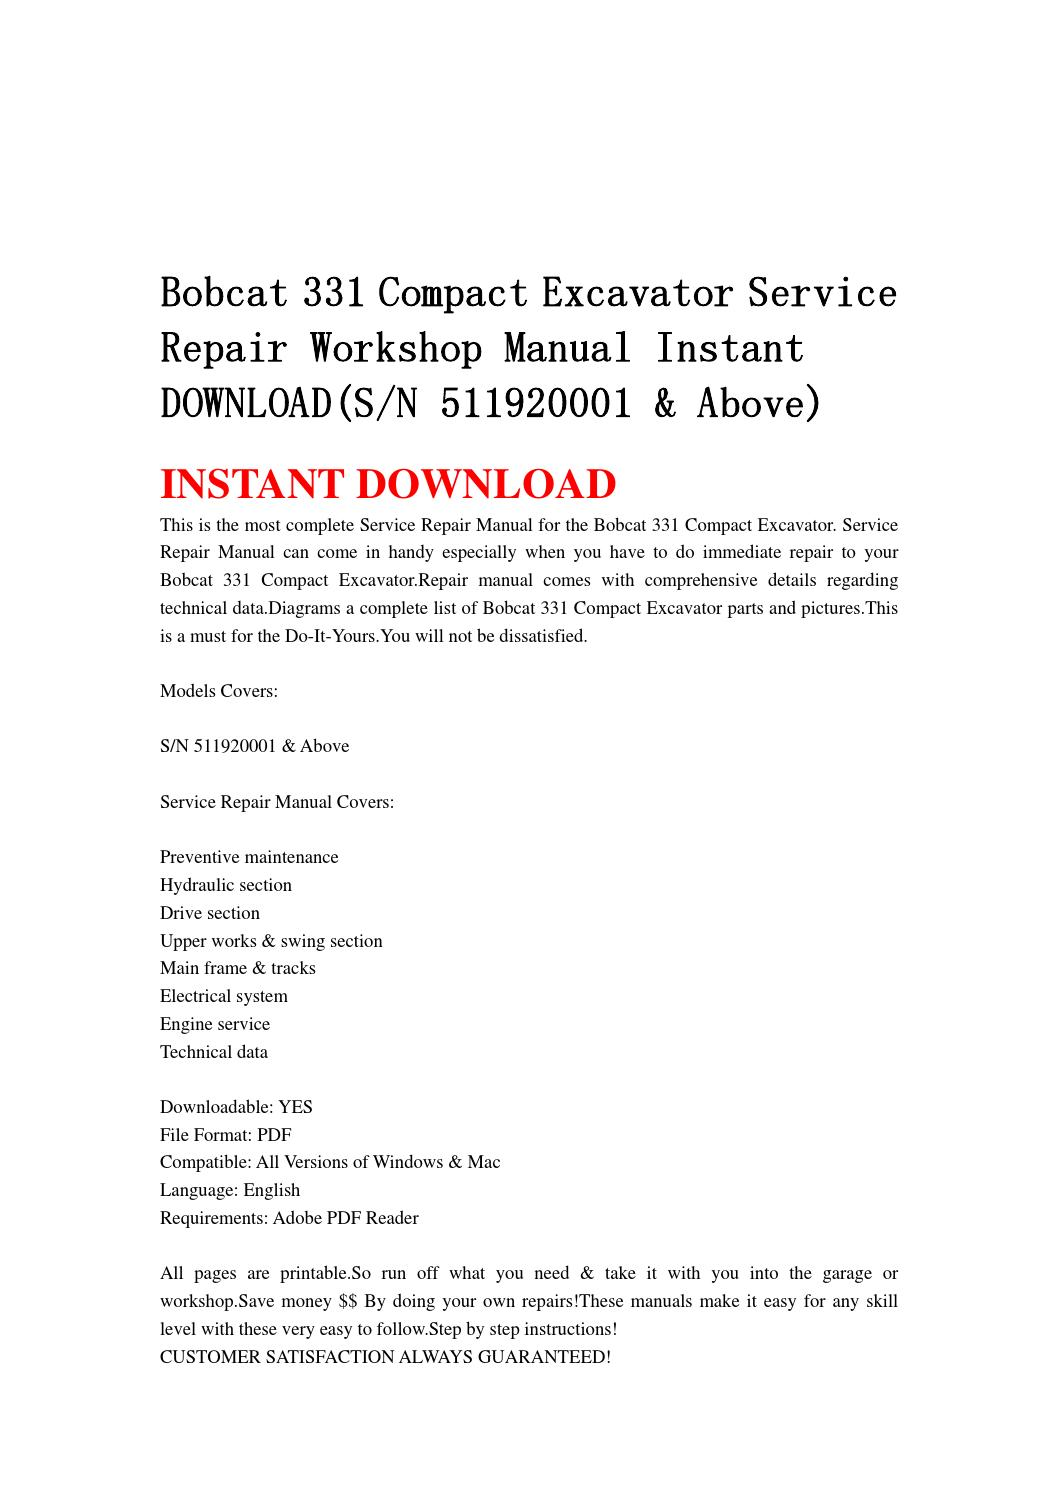 Bobcat 331 compact excavator service repair workshop manual instant  download(sn 511920001 & above by jshefjsne - issuu